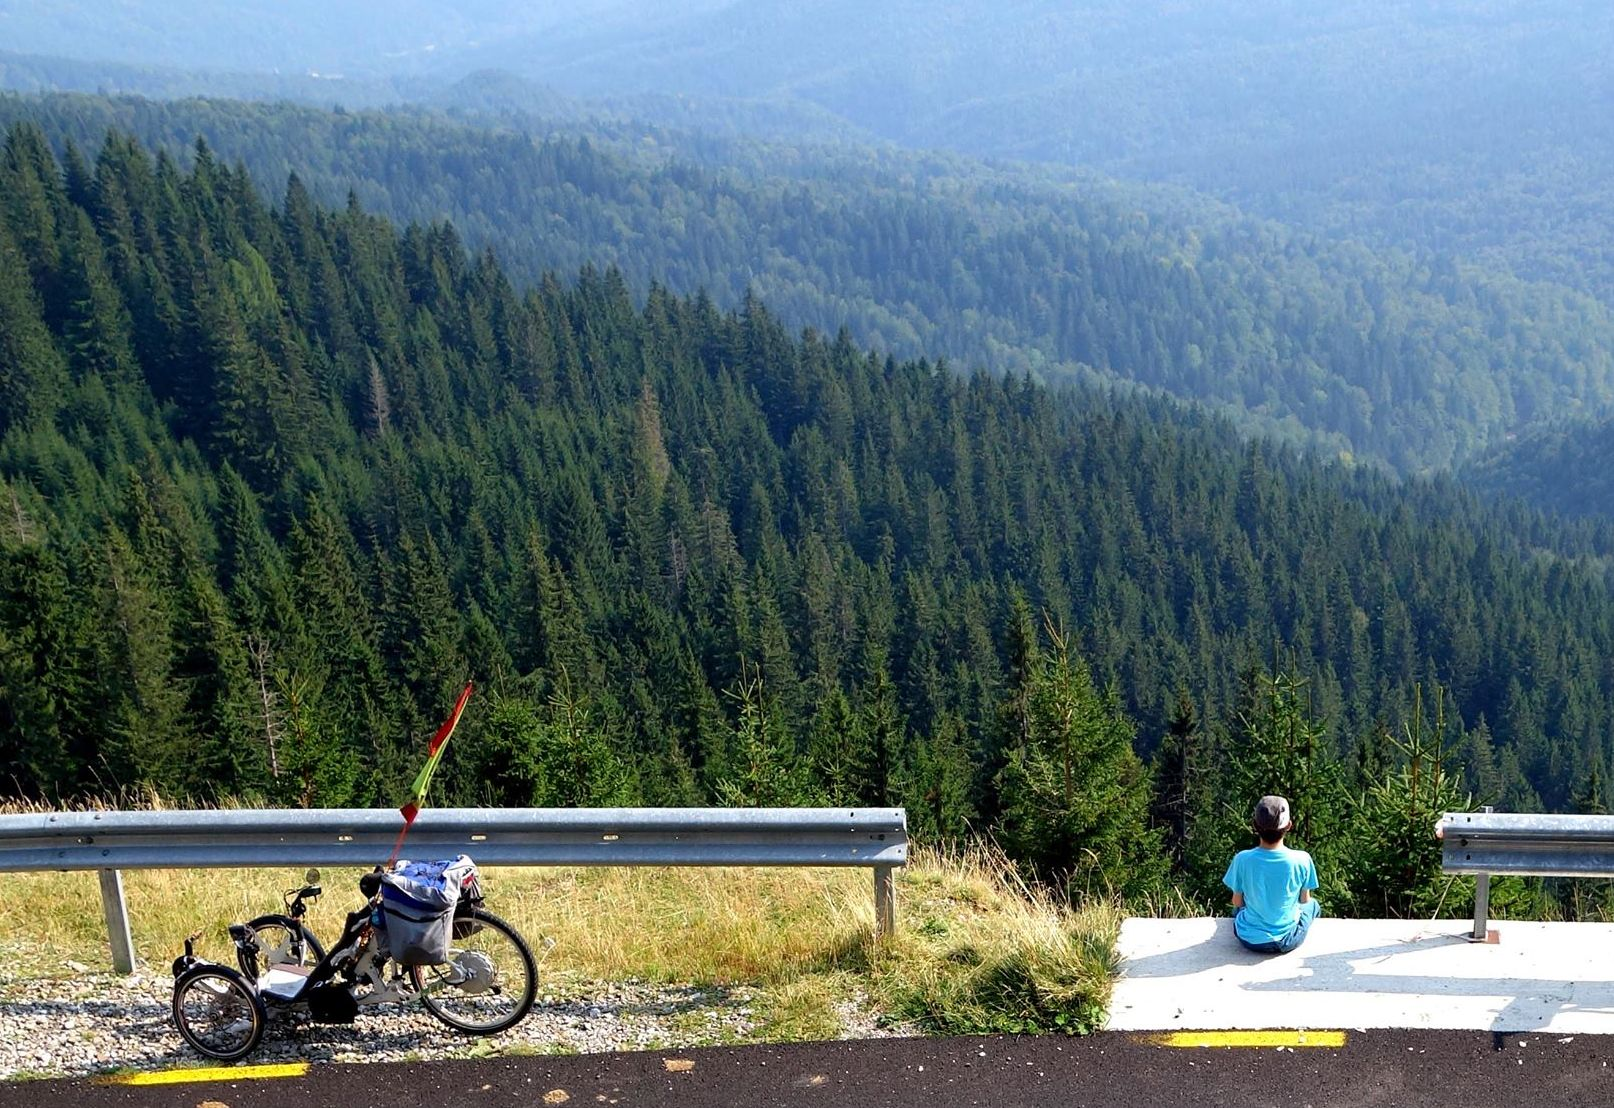 A man sits at the edge of a suspended highway overlooking forests. A trike is parked close to him.